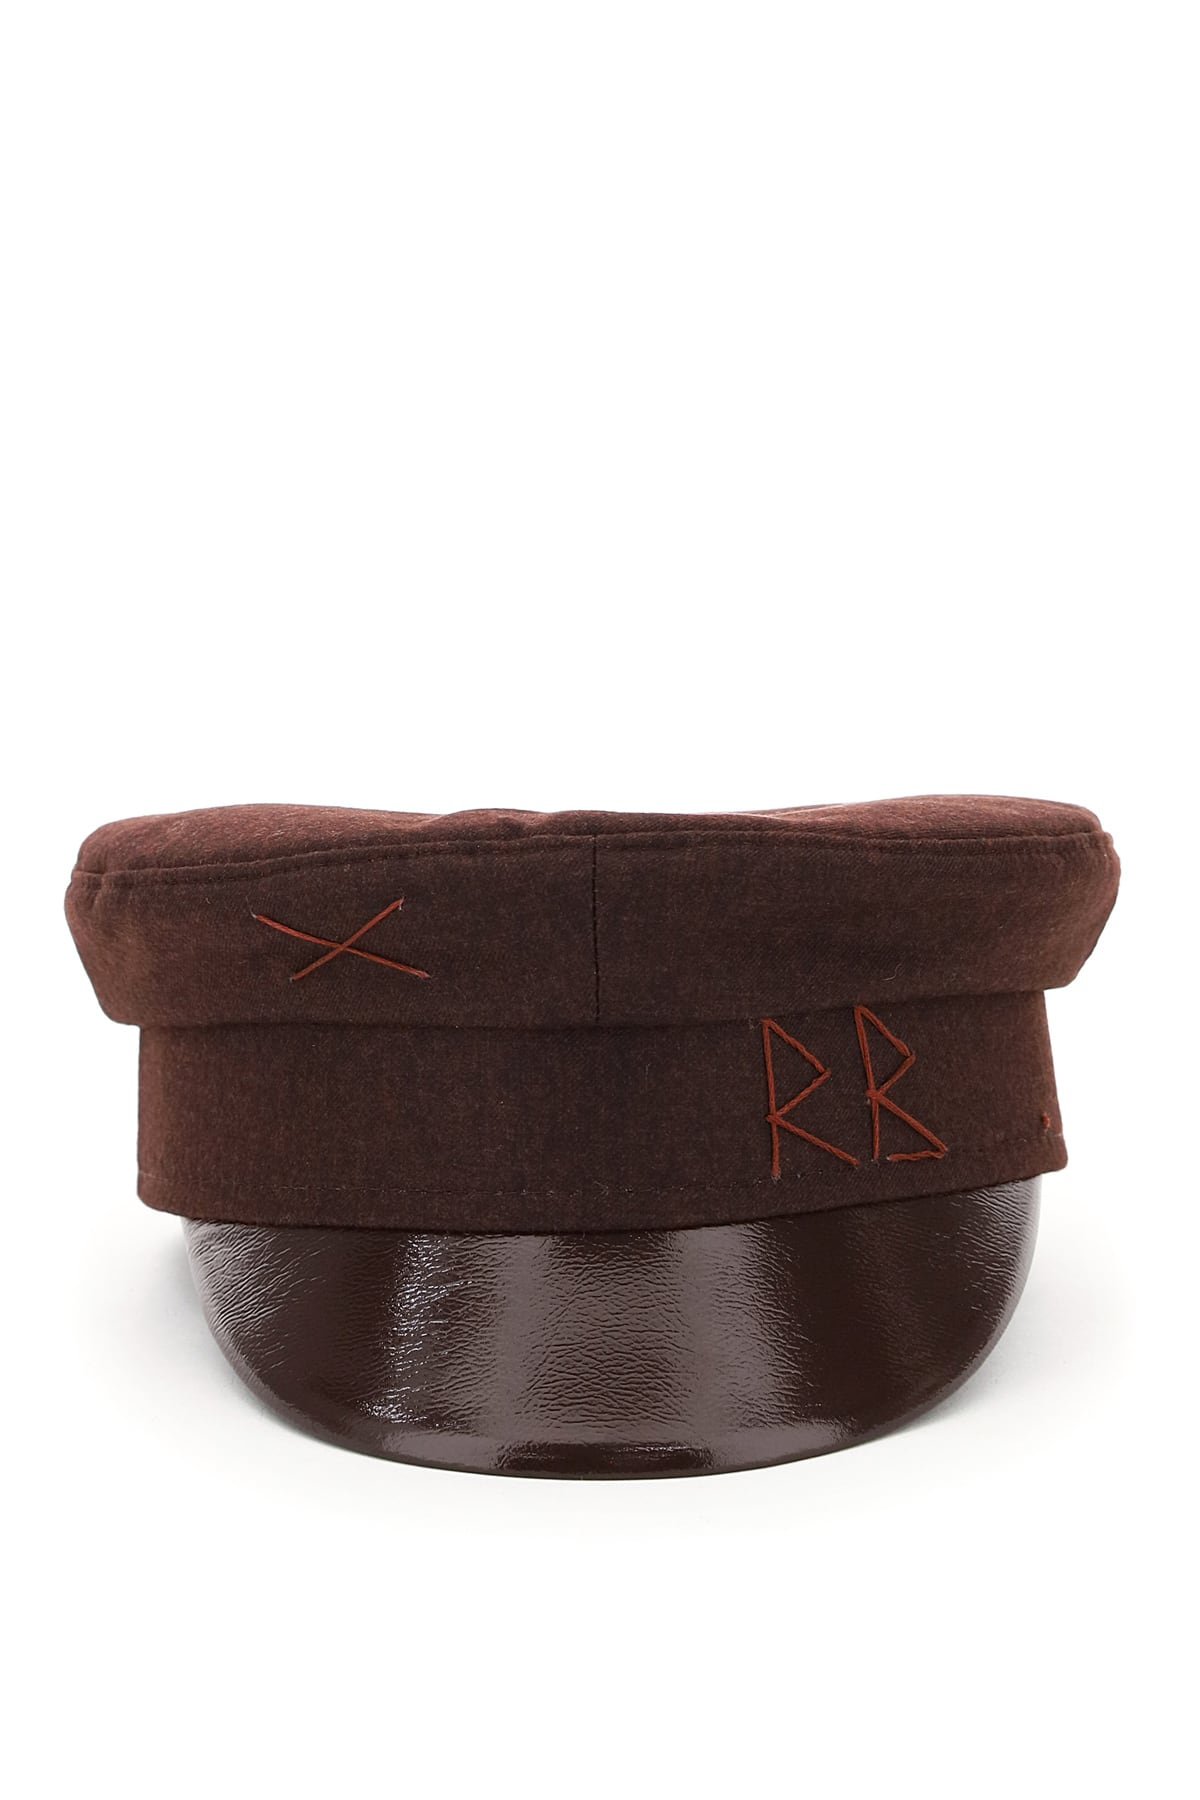 RUSLAN BAGINSKIY BAKER BOY HAT RB EMBROIDERY M Brown